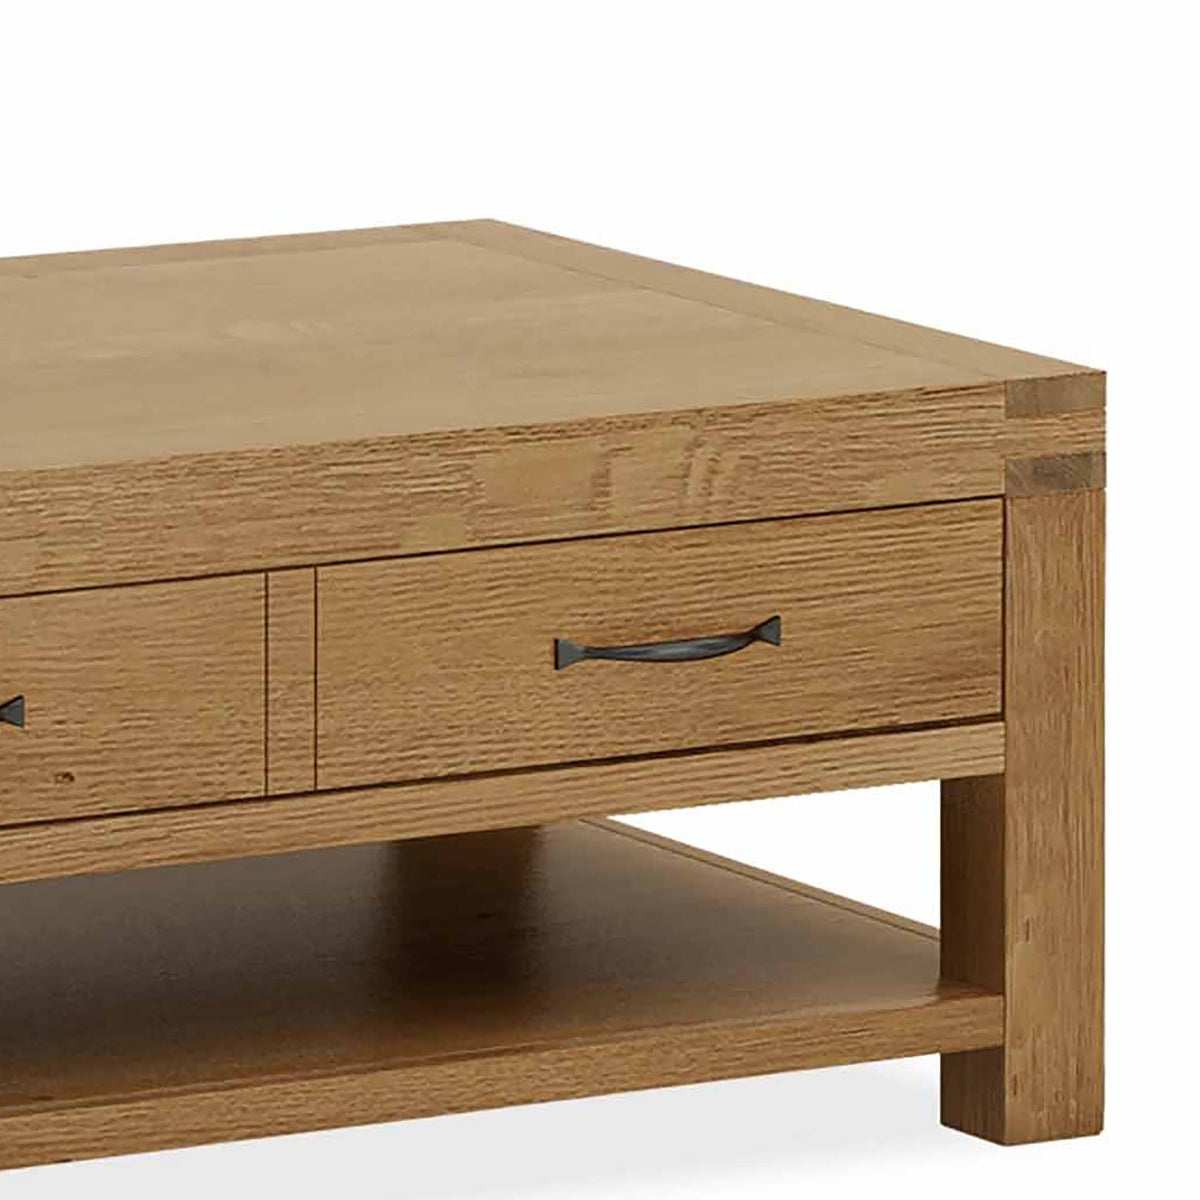 Abbey Grande Oak Coffee Table with Storage Drawer - Close Up of side